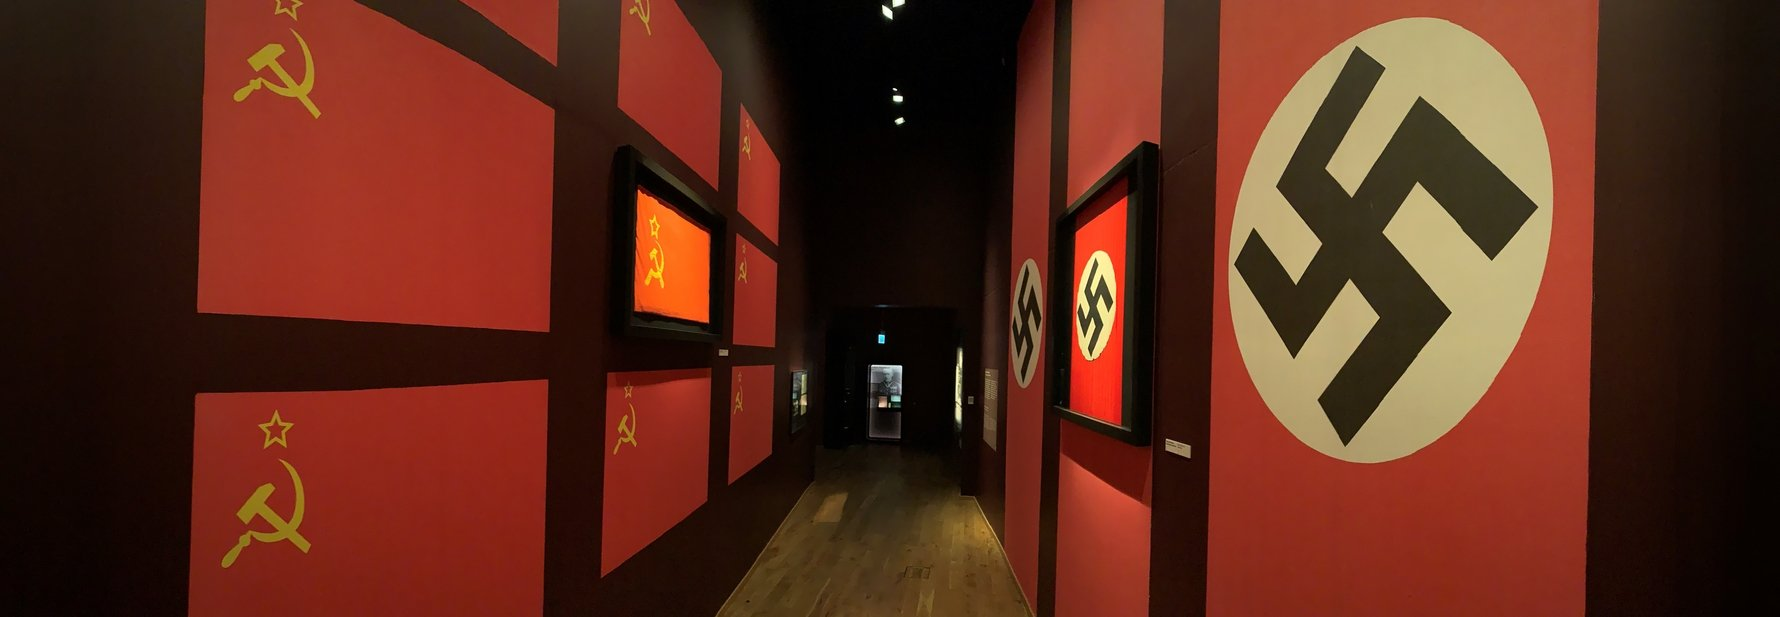 WWII Museum - Communism Against Nazism